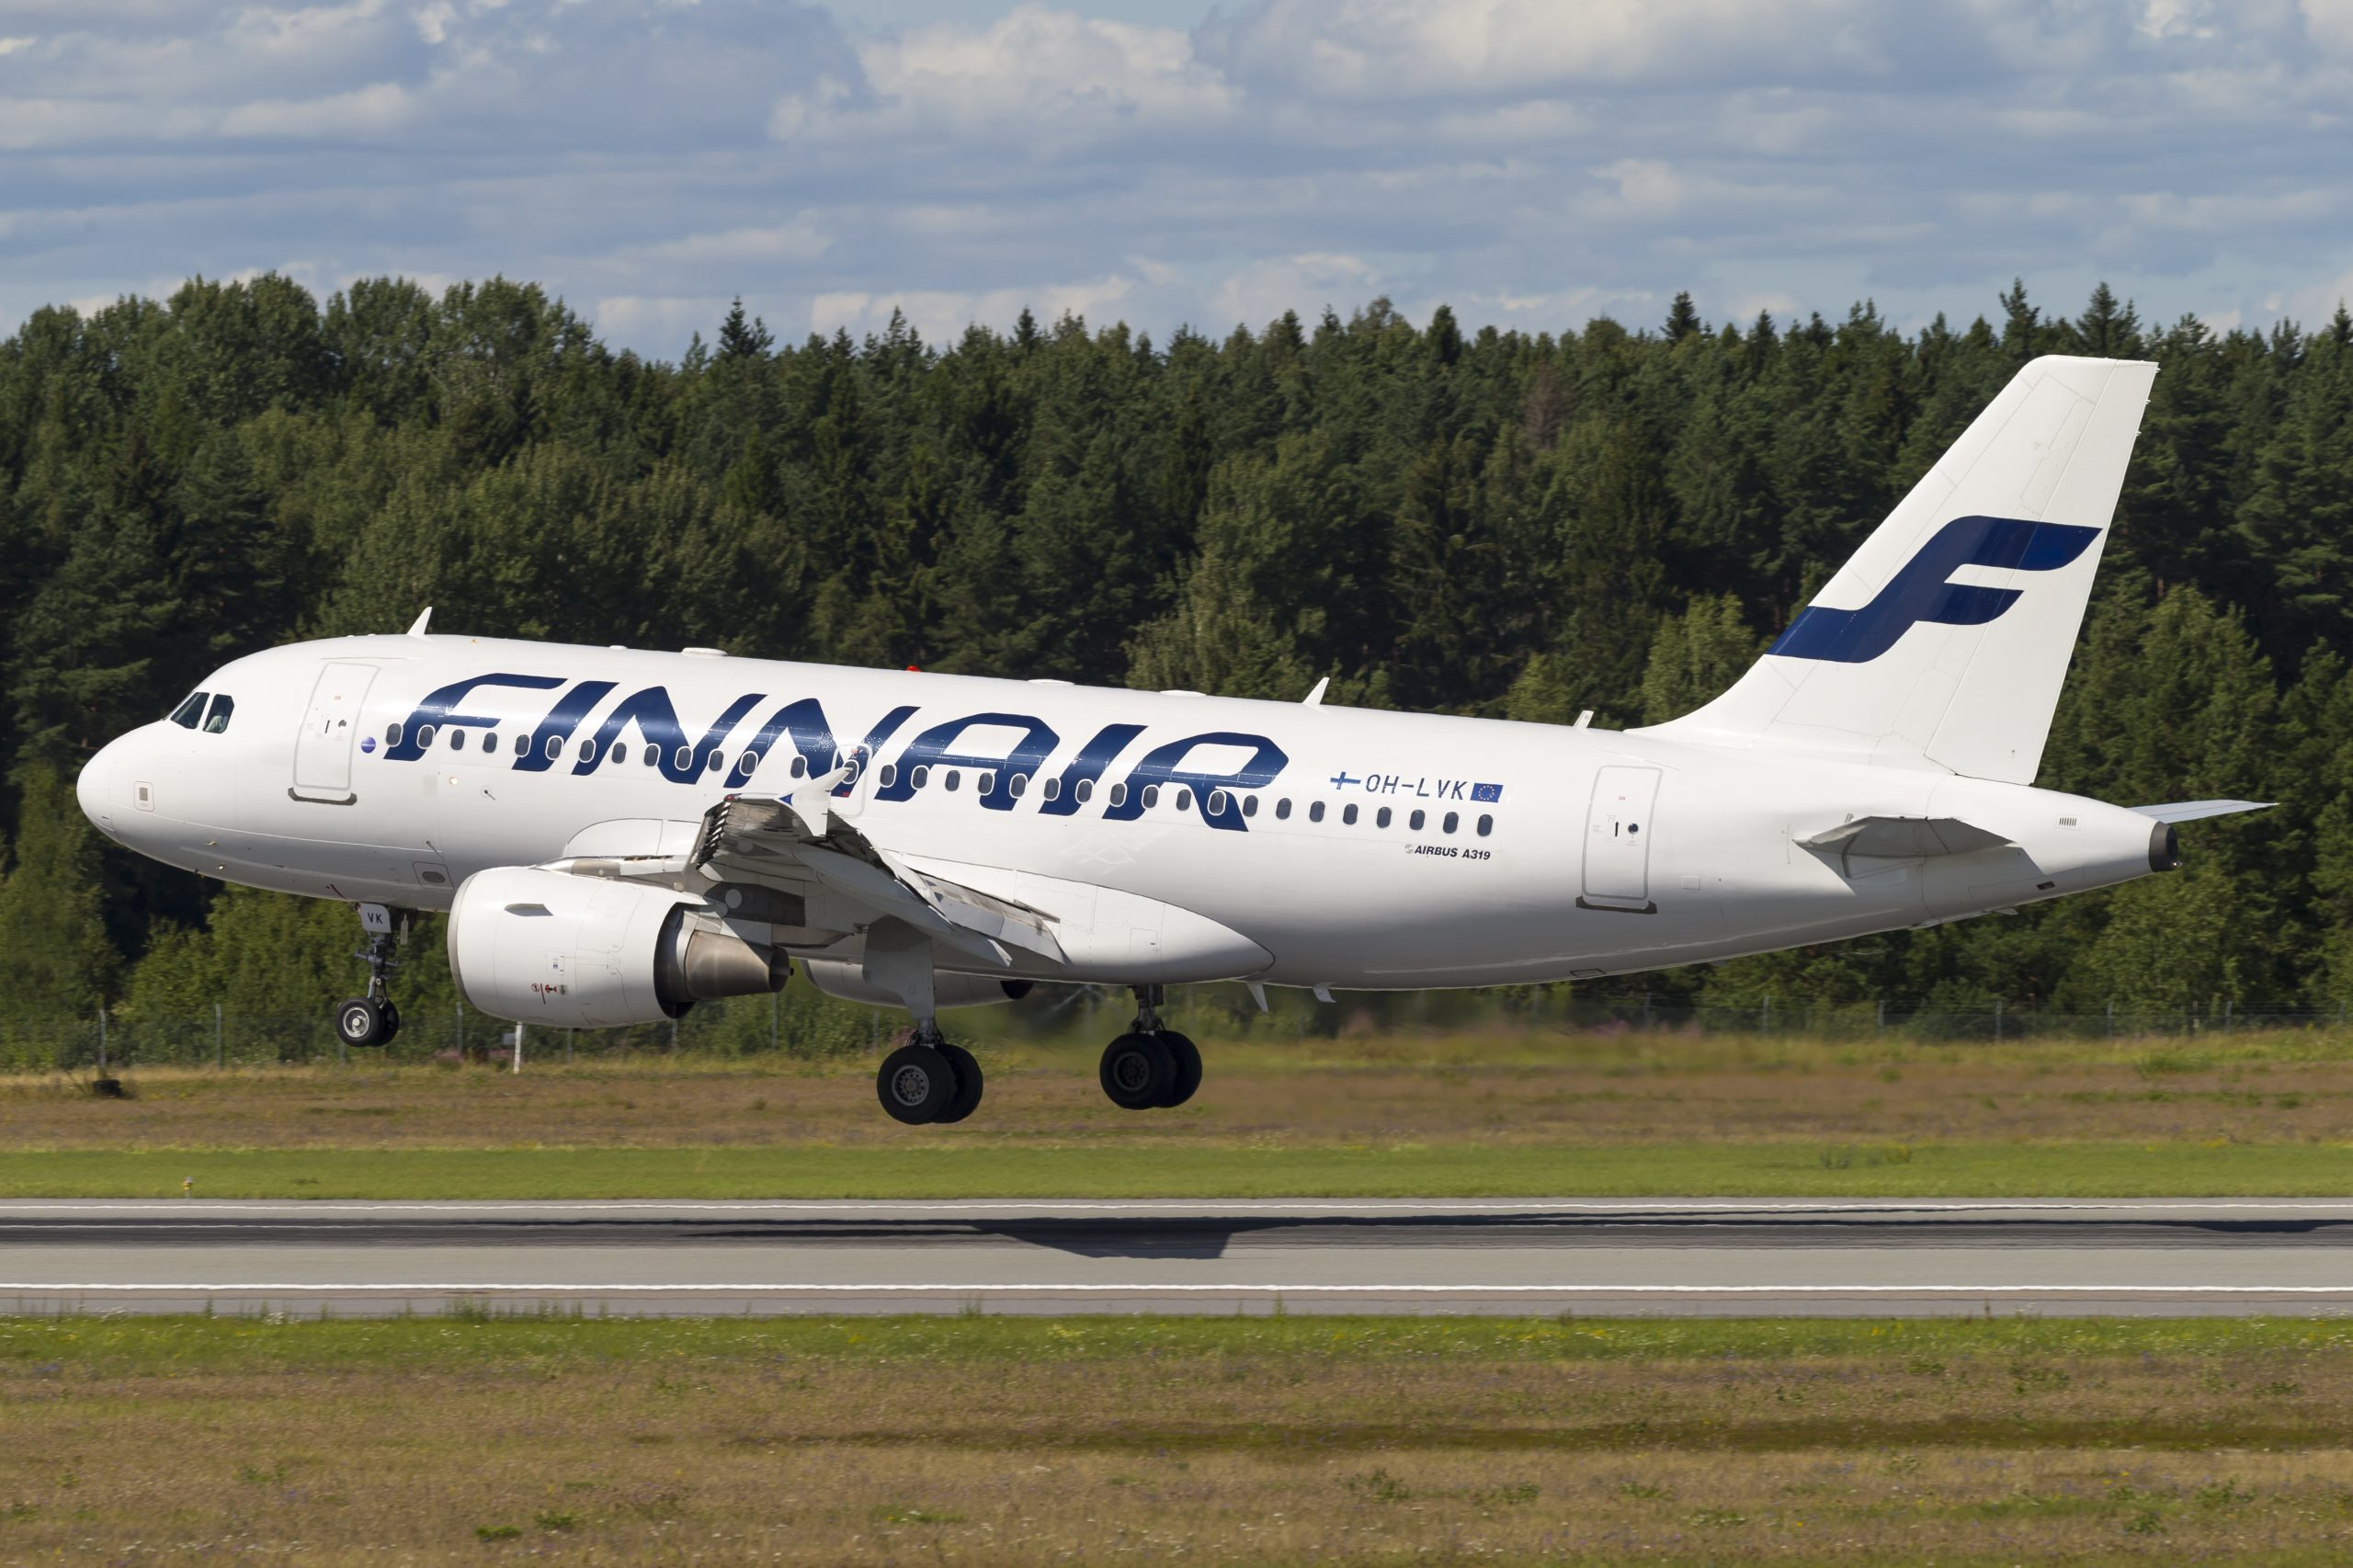 En Airbus A319-100 fra Finnair. Foto: © Thorbjørn Brunander Sund, Danish Aviation Photo